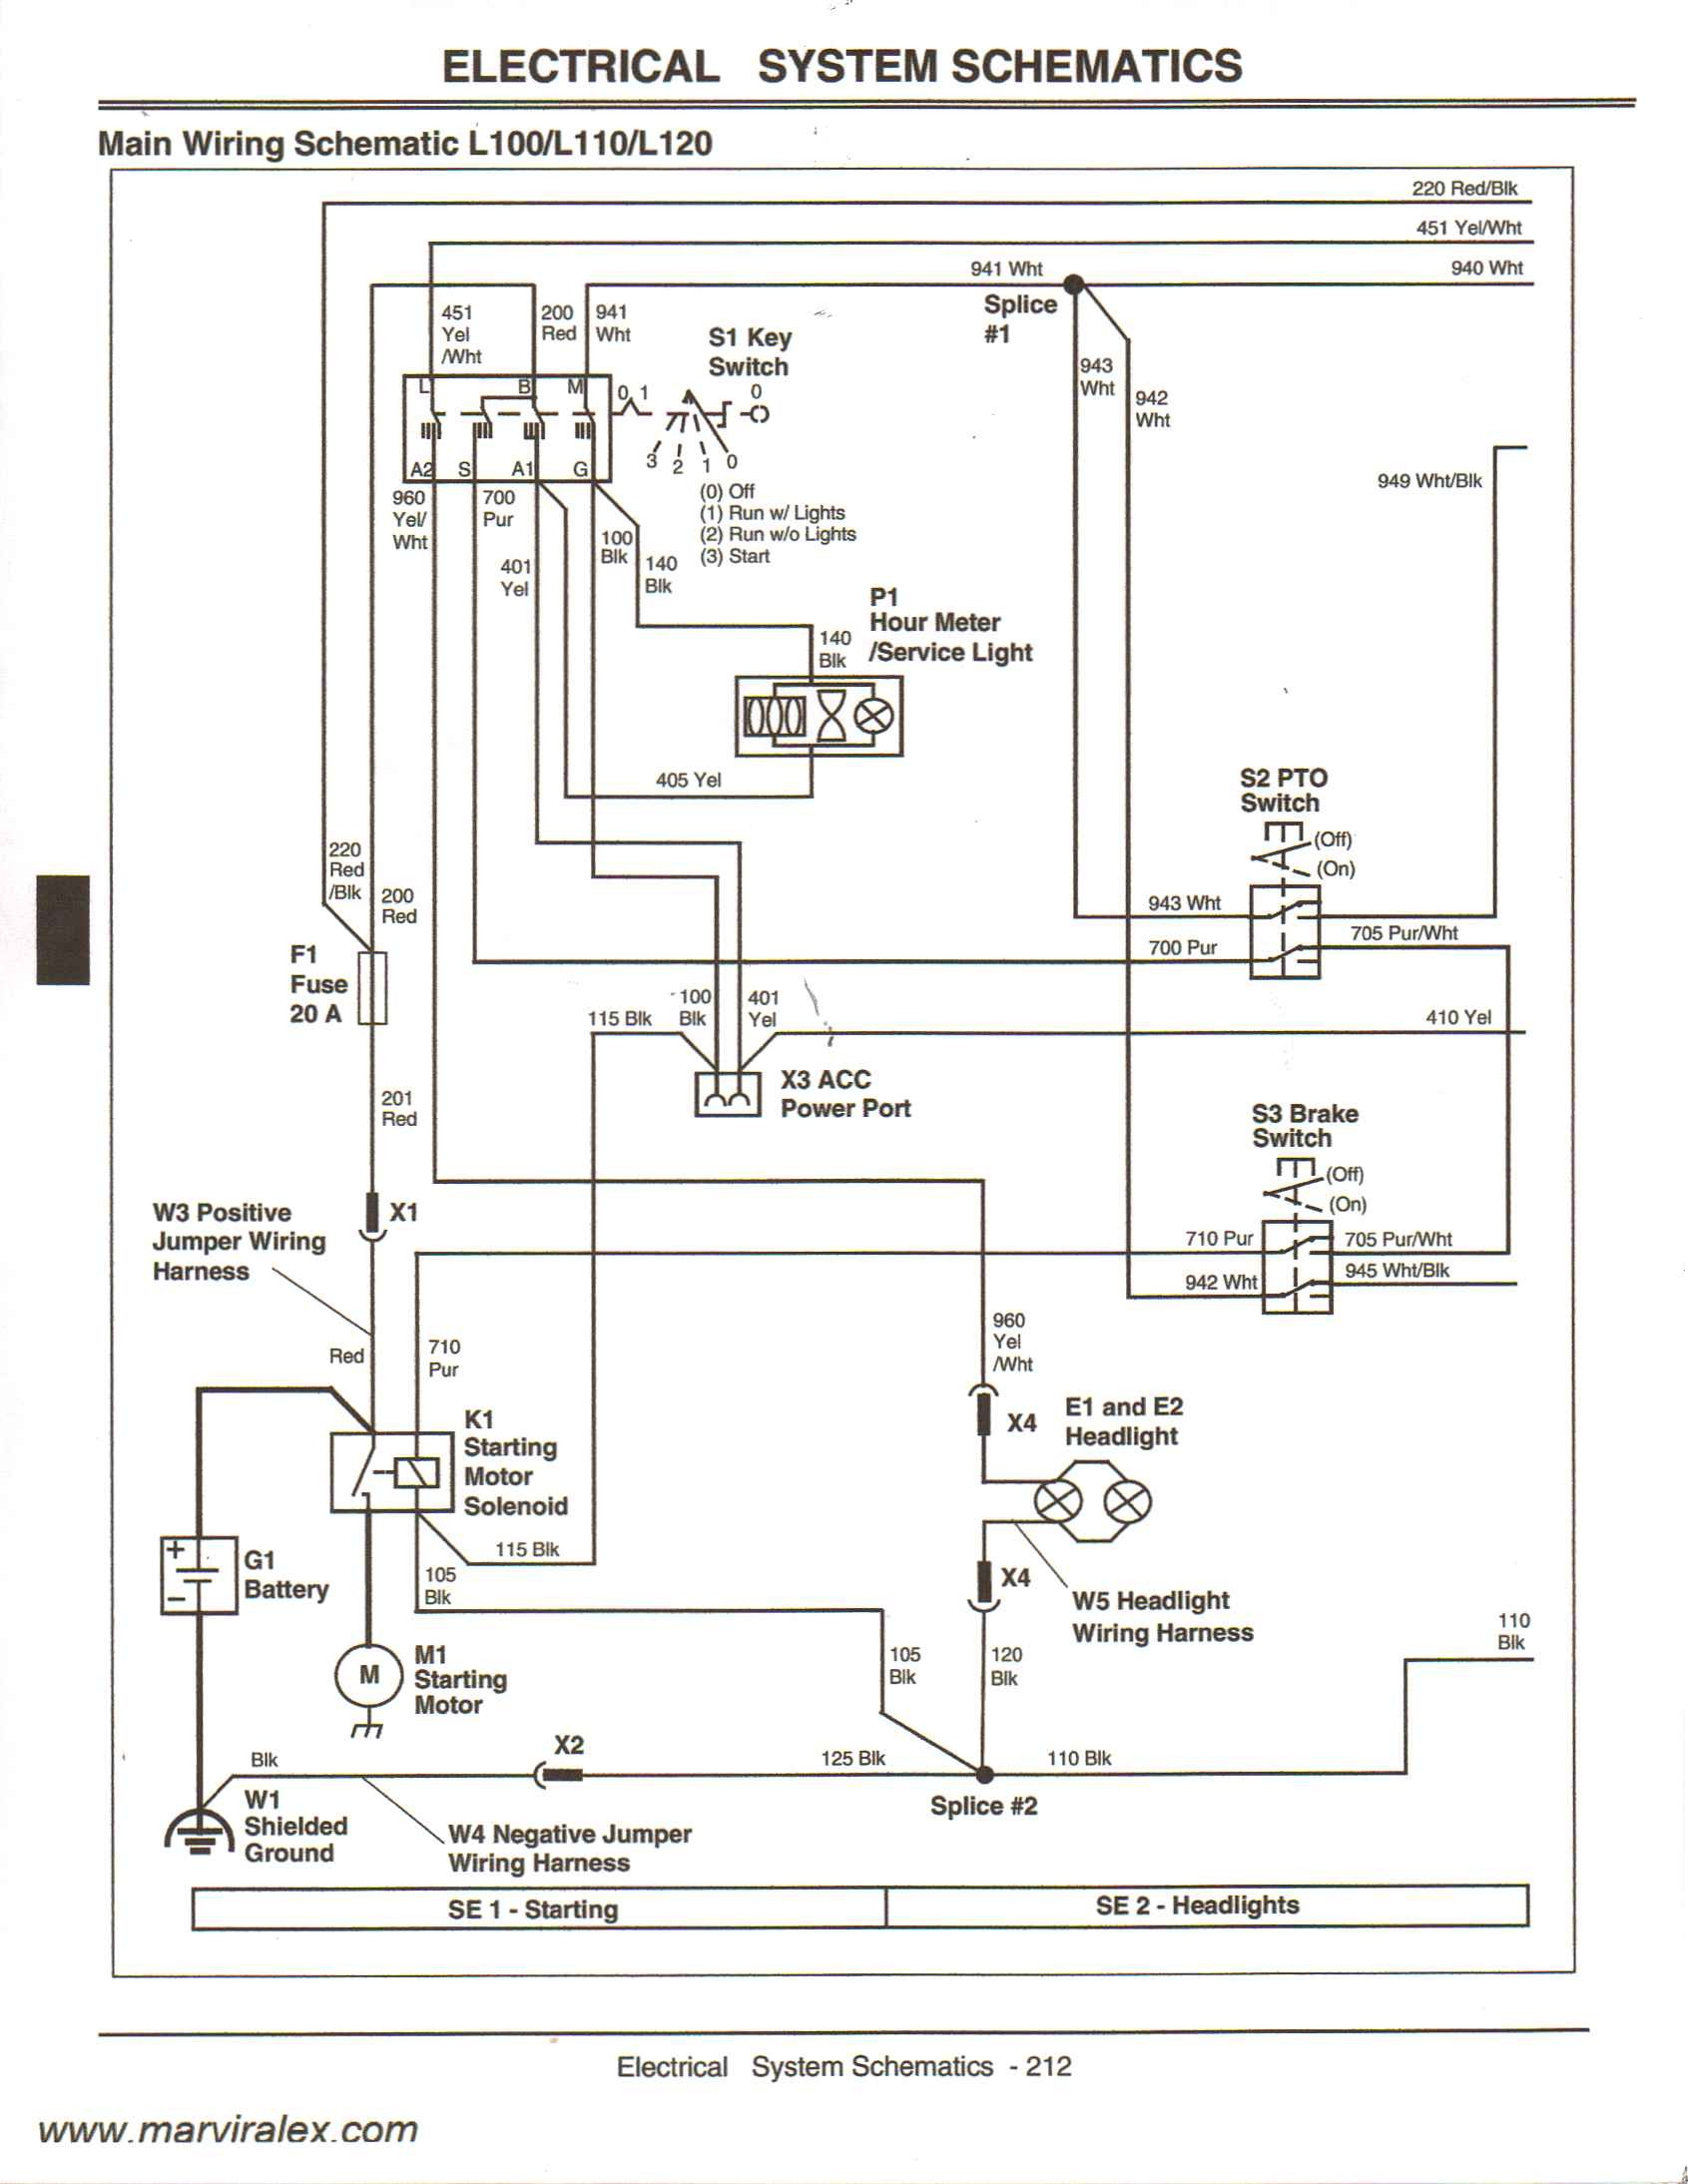 John Deere 6310 Wiring Diagram Trusted Wiring Diagrams John Deere 4040 Wiring  Diagram John Deere 850 Wiring Diagram